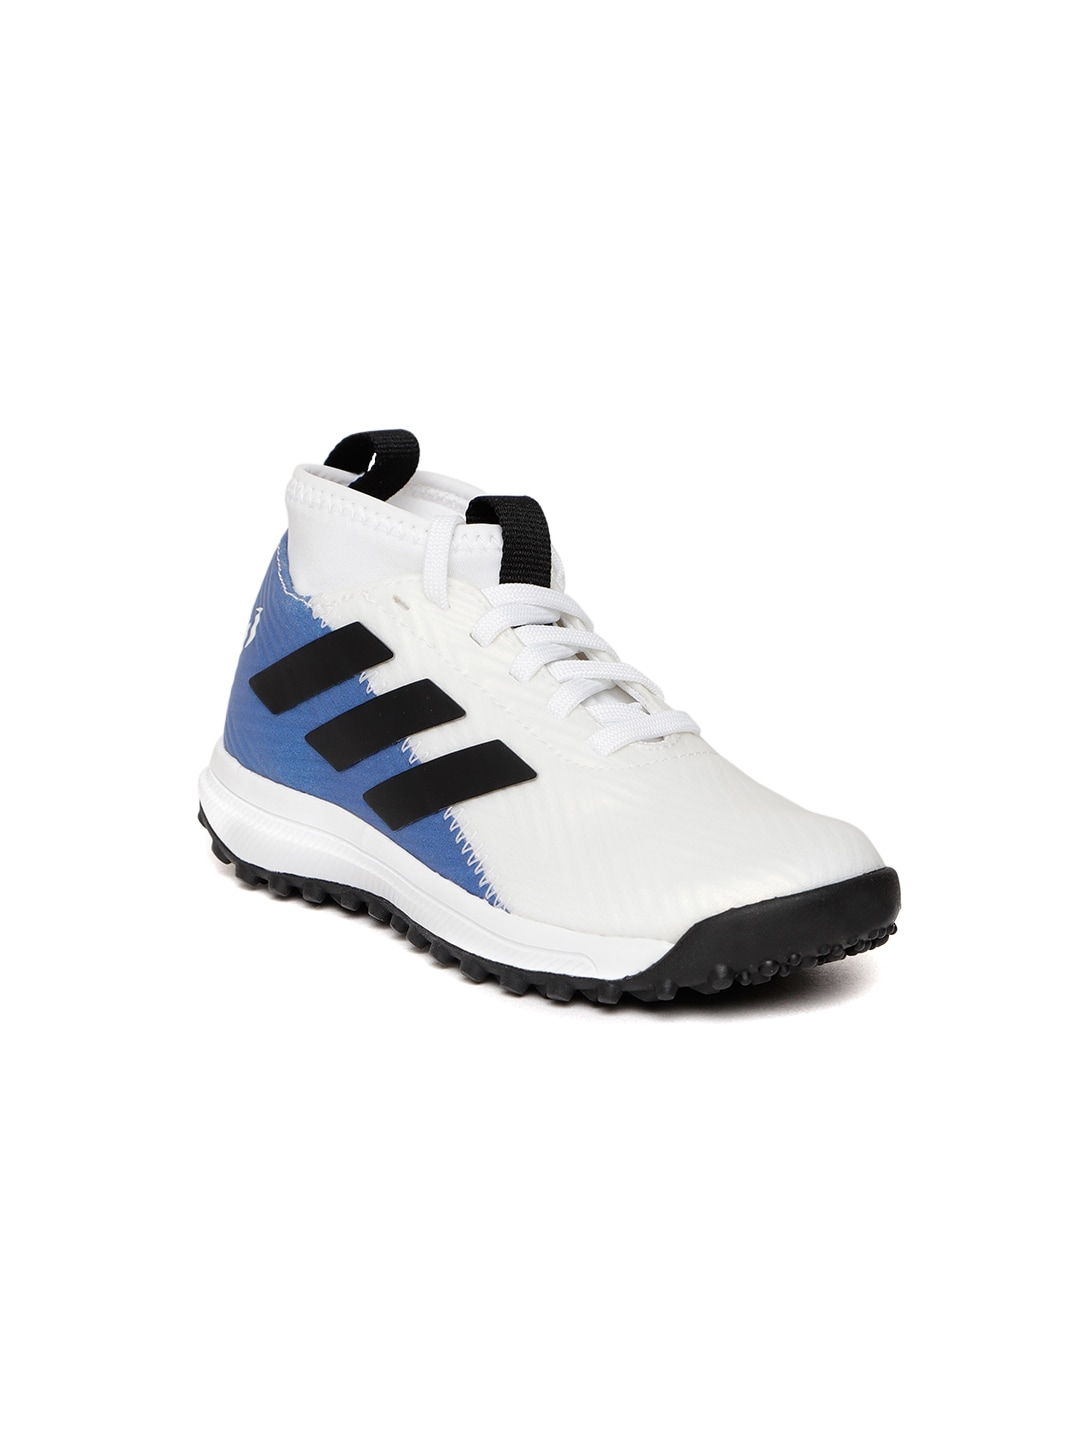 6308a7c7c Adidas Shoes - Buy Adidas Shoes for Men   Women Online - Myntra